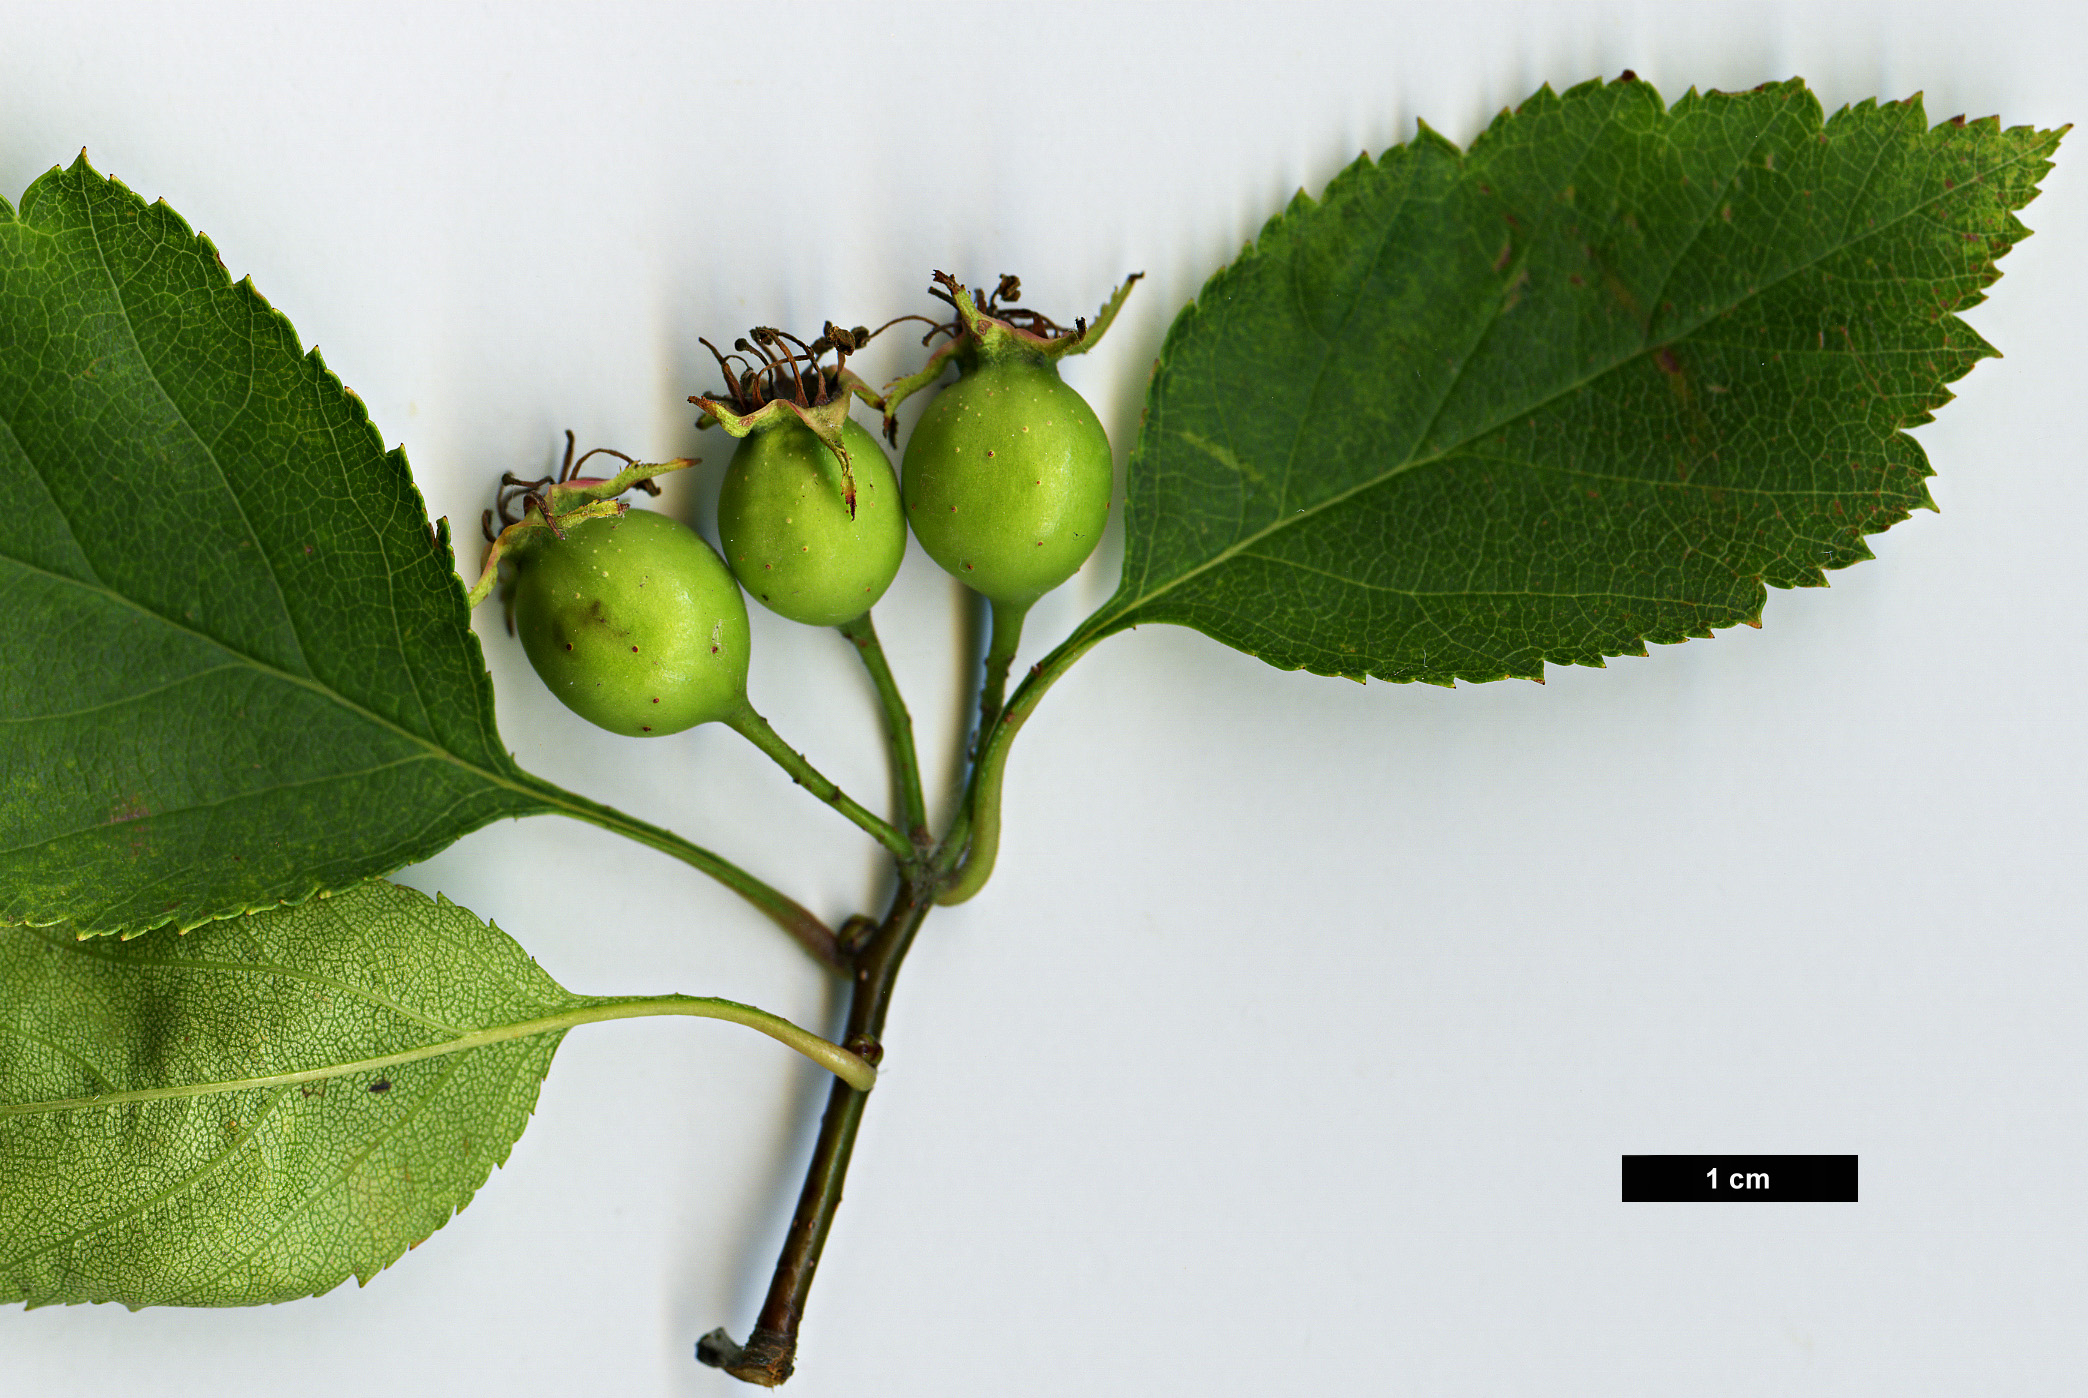 High resolution image: Family: Rosaceae - Genus: Crataegus - Taxon: buckleyi